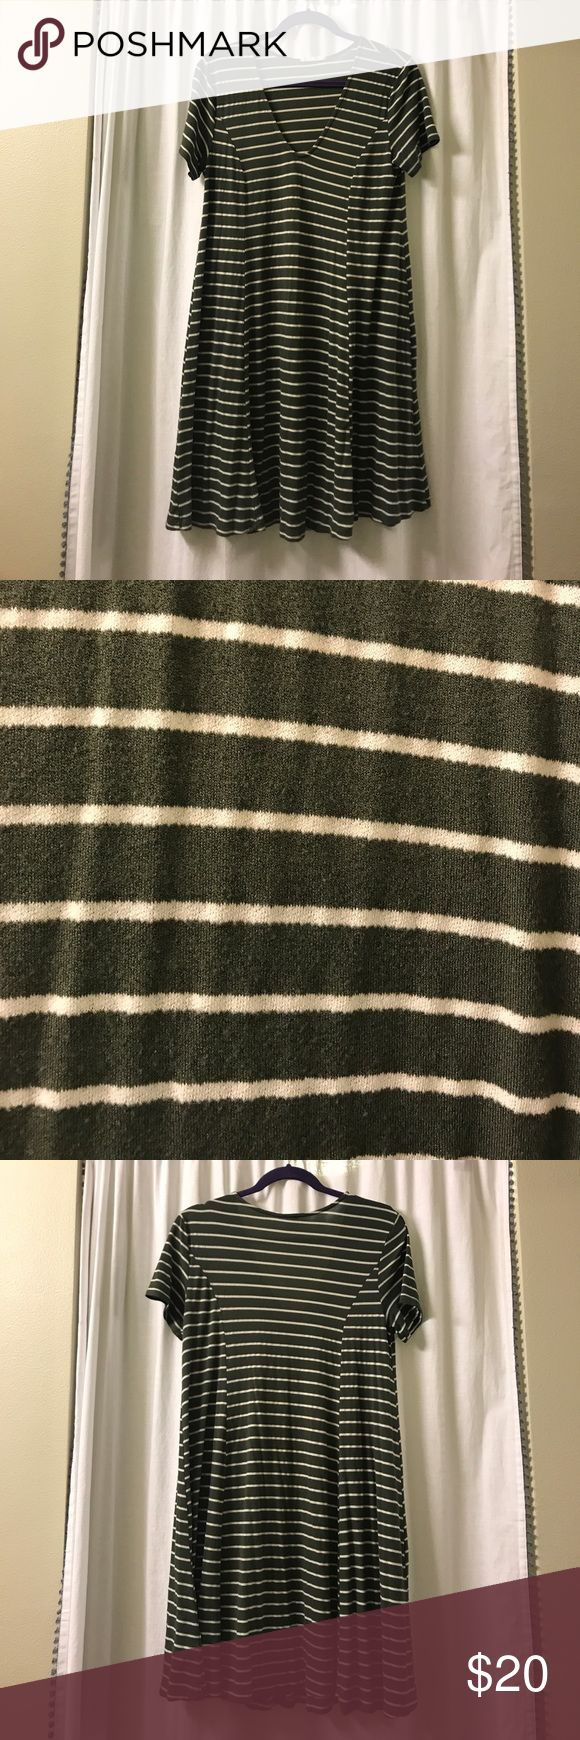 LUSH olive green and white striped trapeze dress LUSH olive green and white striped grapes dress. A great piece alone or with a denim jacket. Make an offer! Lush Dresses Midi